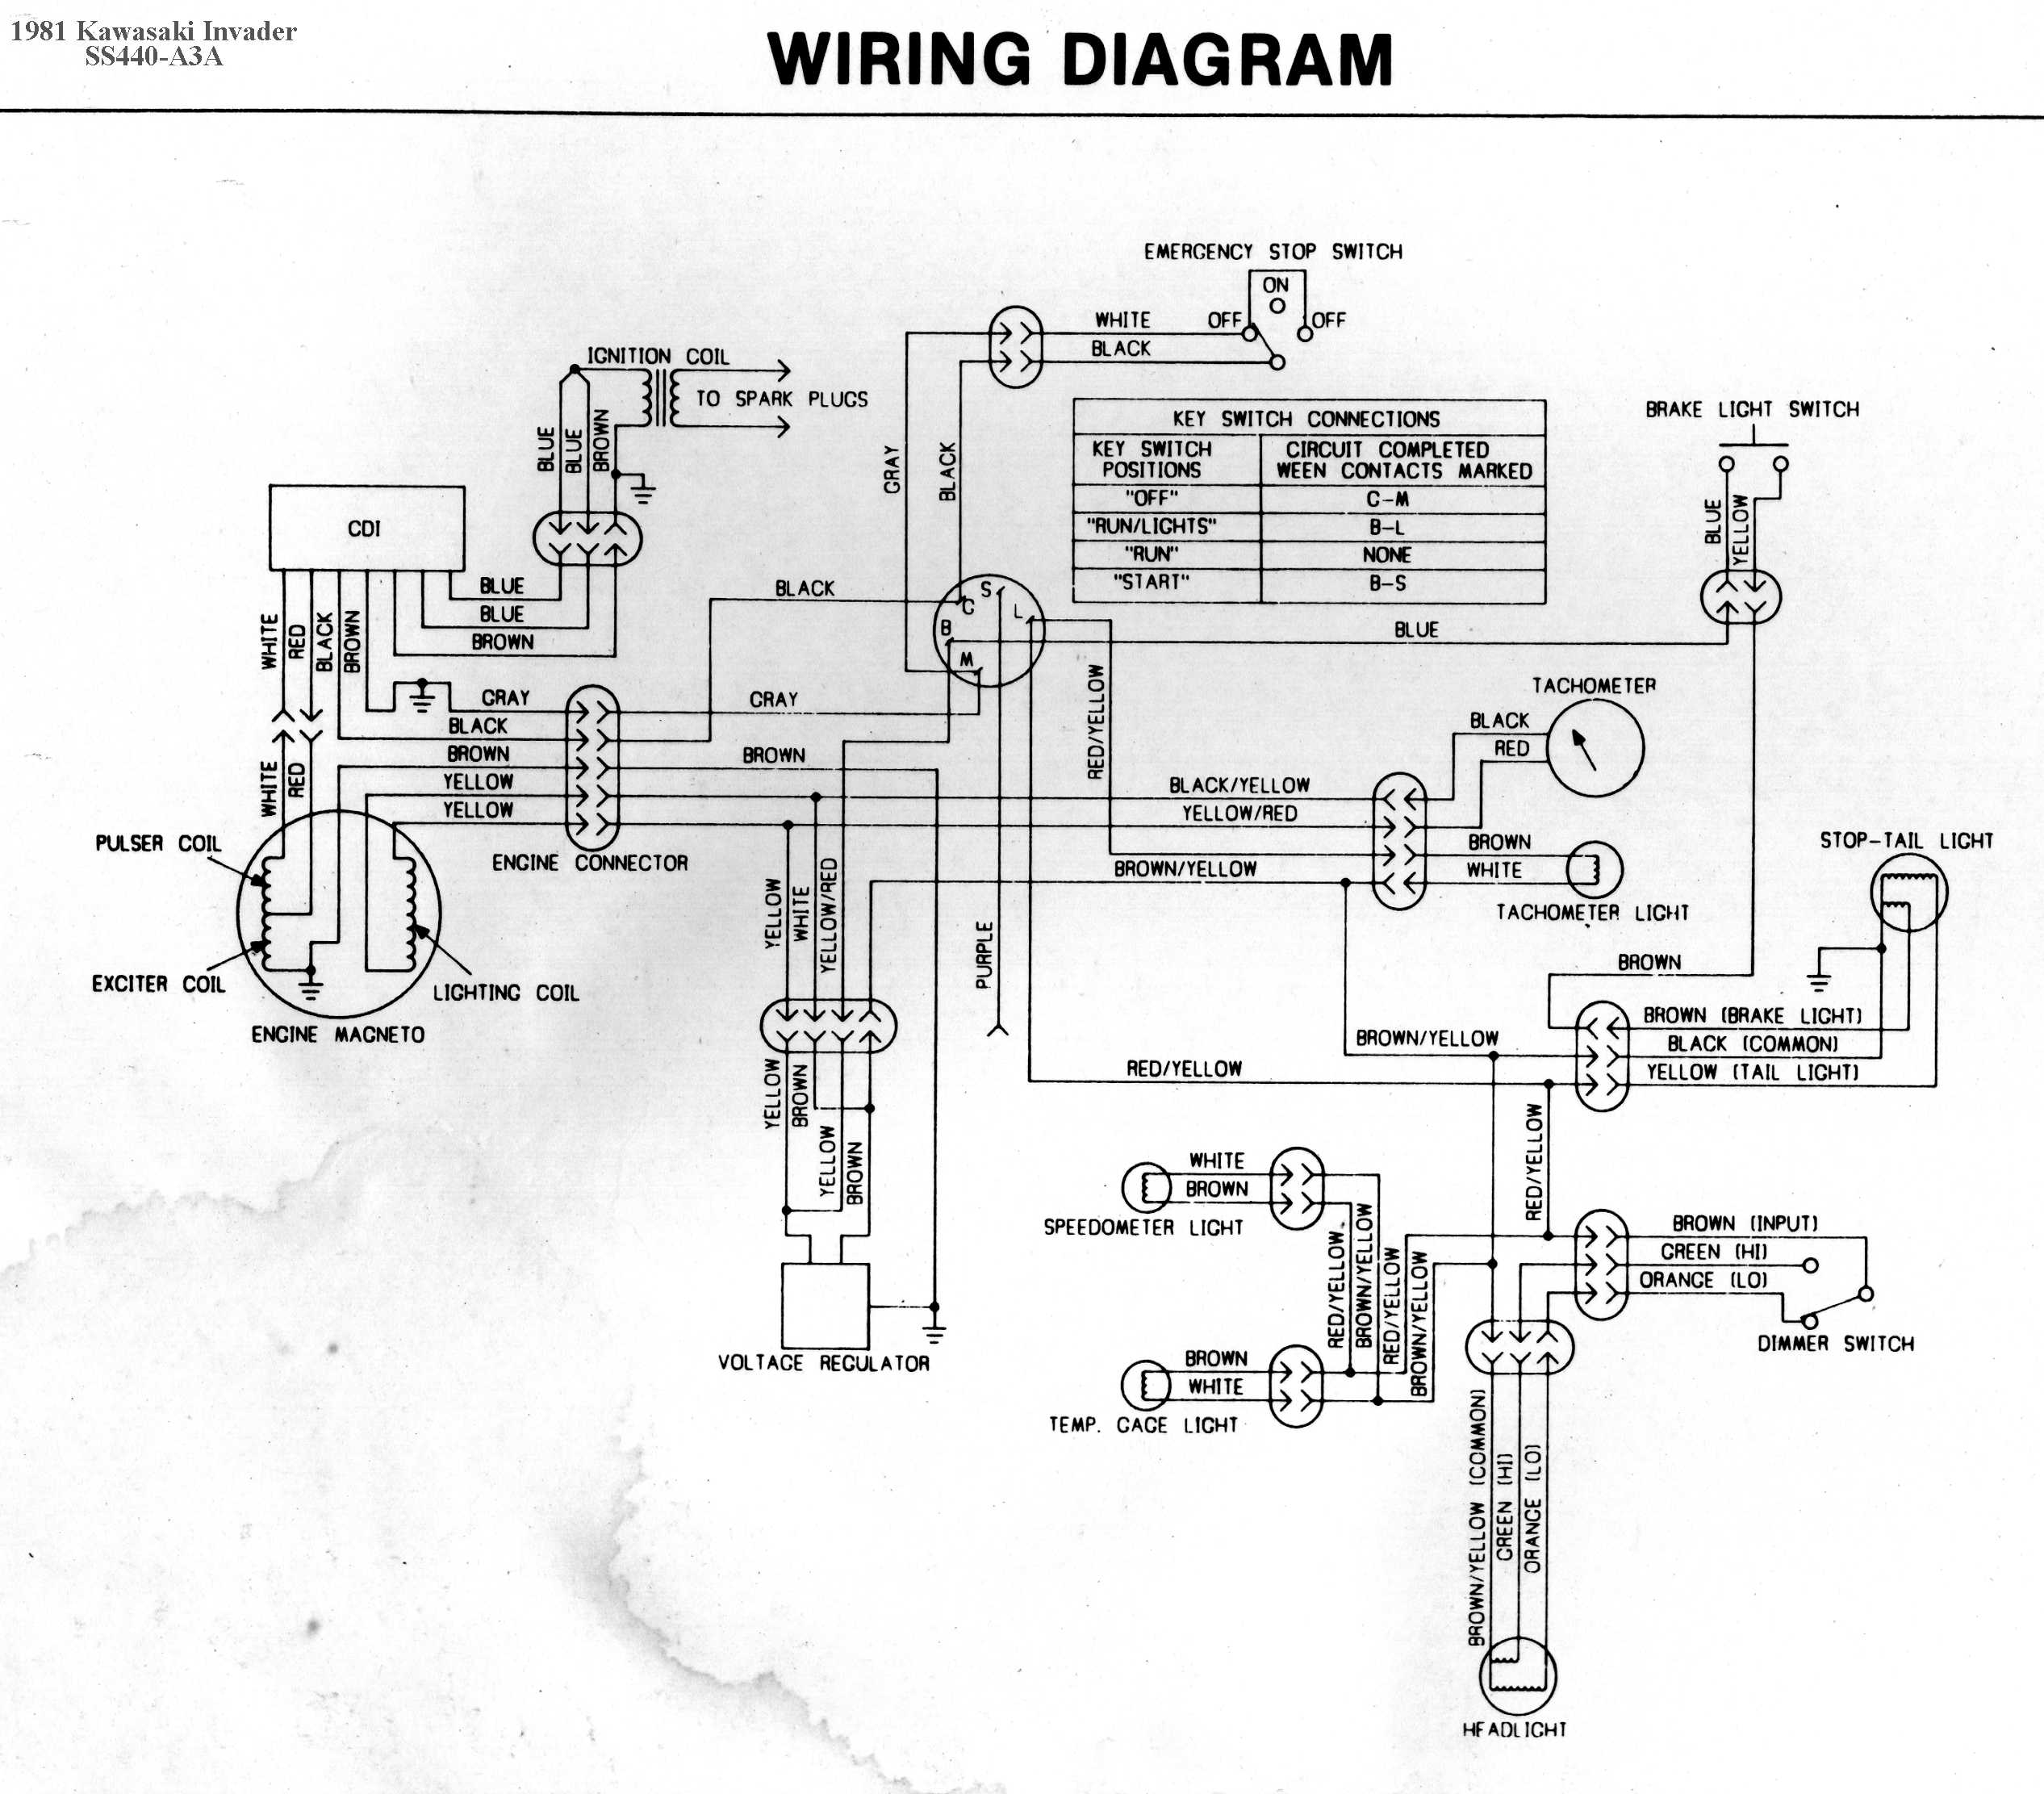 ss440a3a kawasaki invader snowmobile wiring diagrams wiring diagram ski doo snowmobile at creativeand.co